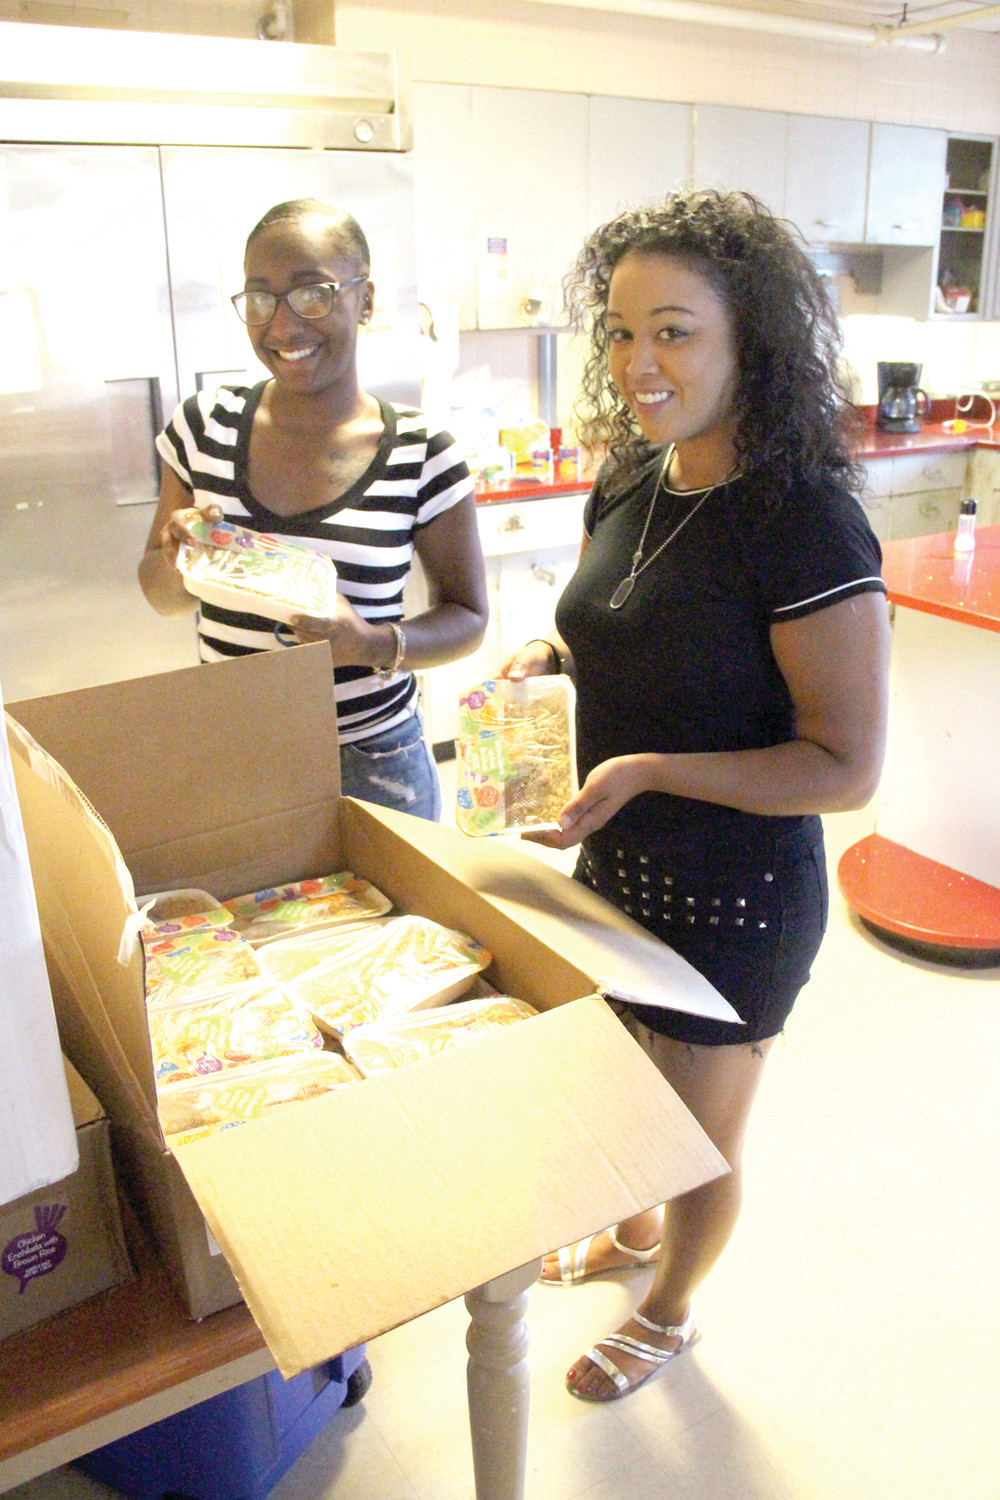 WHAT A SURPRISE: Asia Maynard and Ariel Martinez of the Crossroads-run Warwick Family Shelter in Conimicut look over some of the ready-to-cook meals delivered to the shelter.